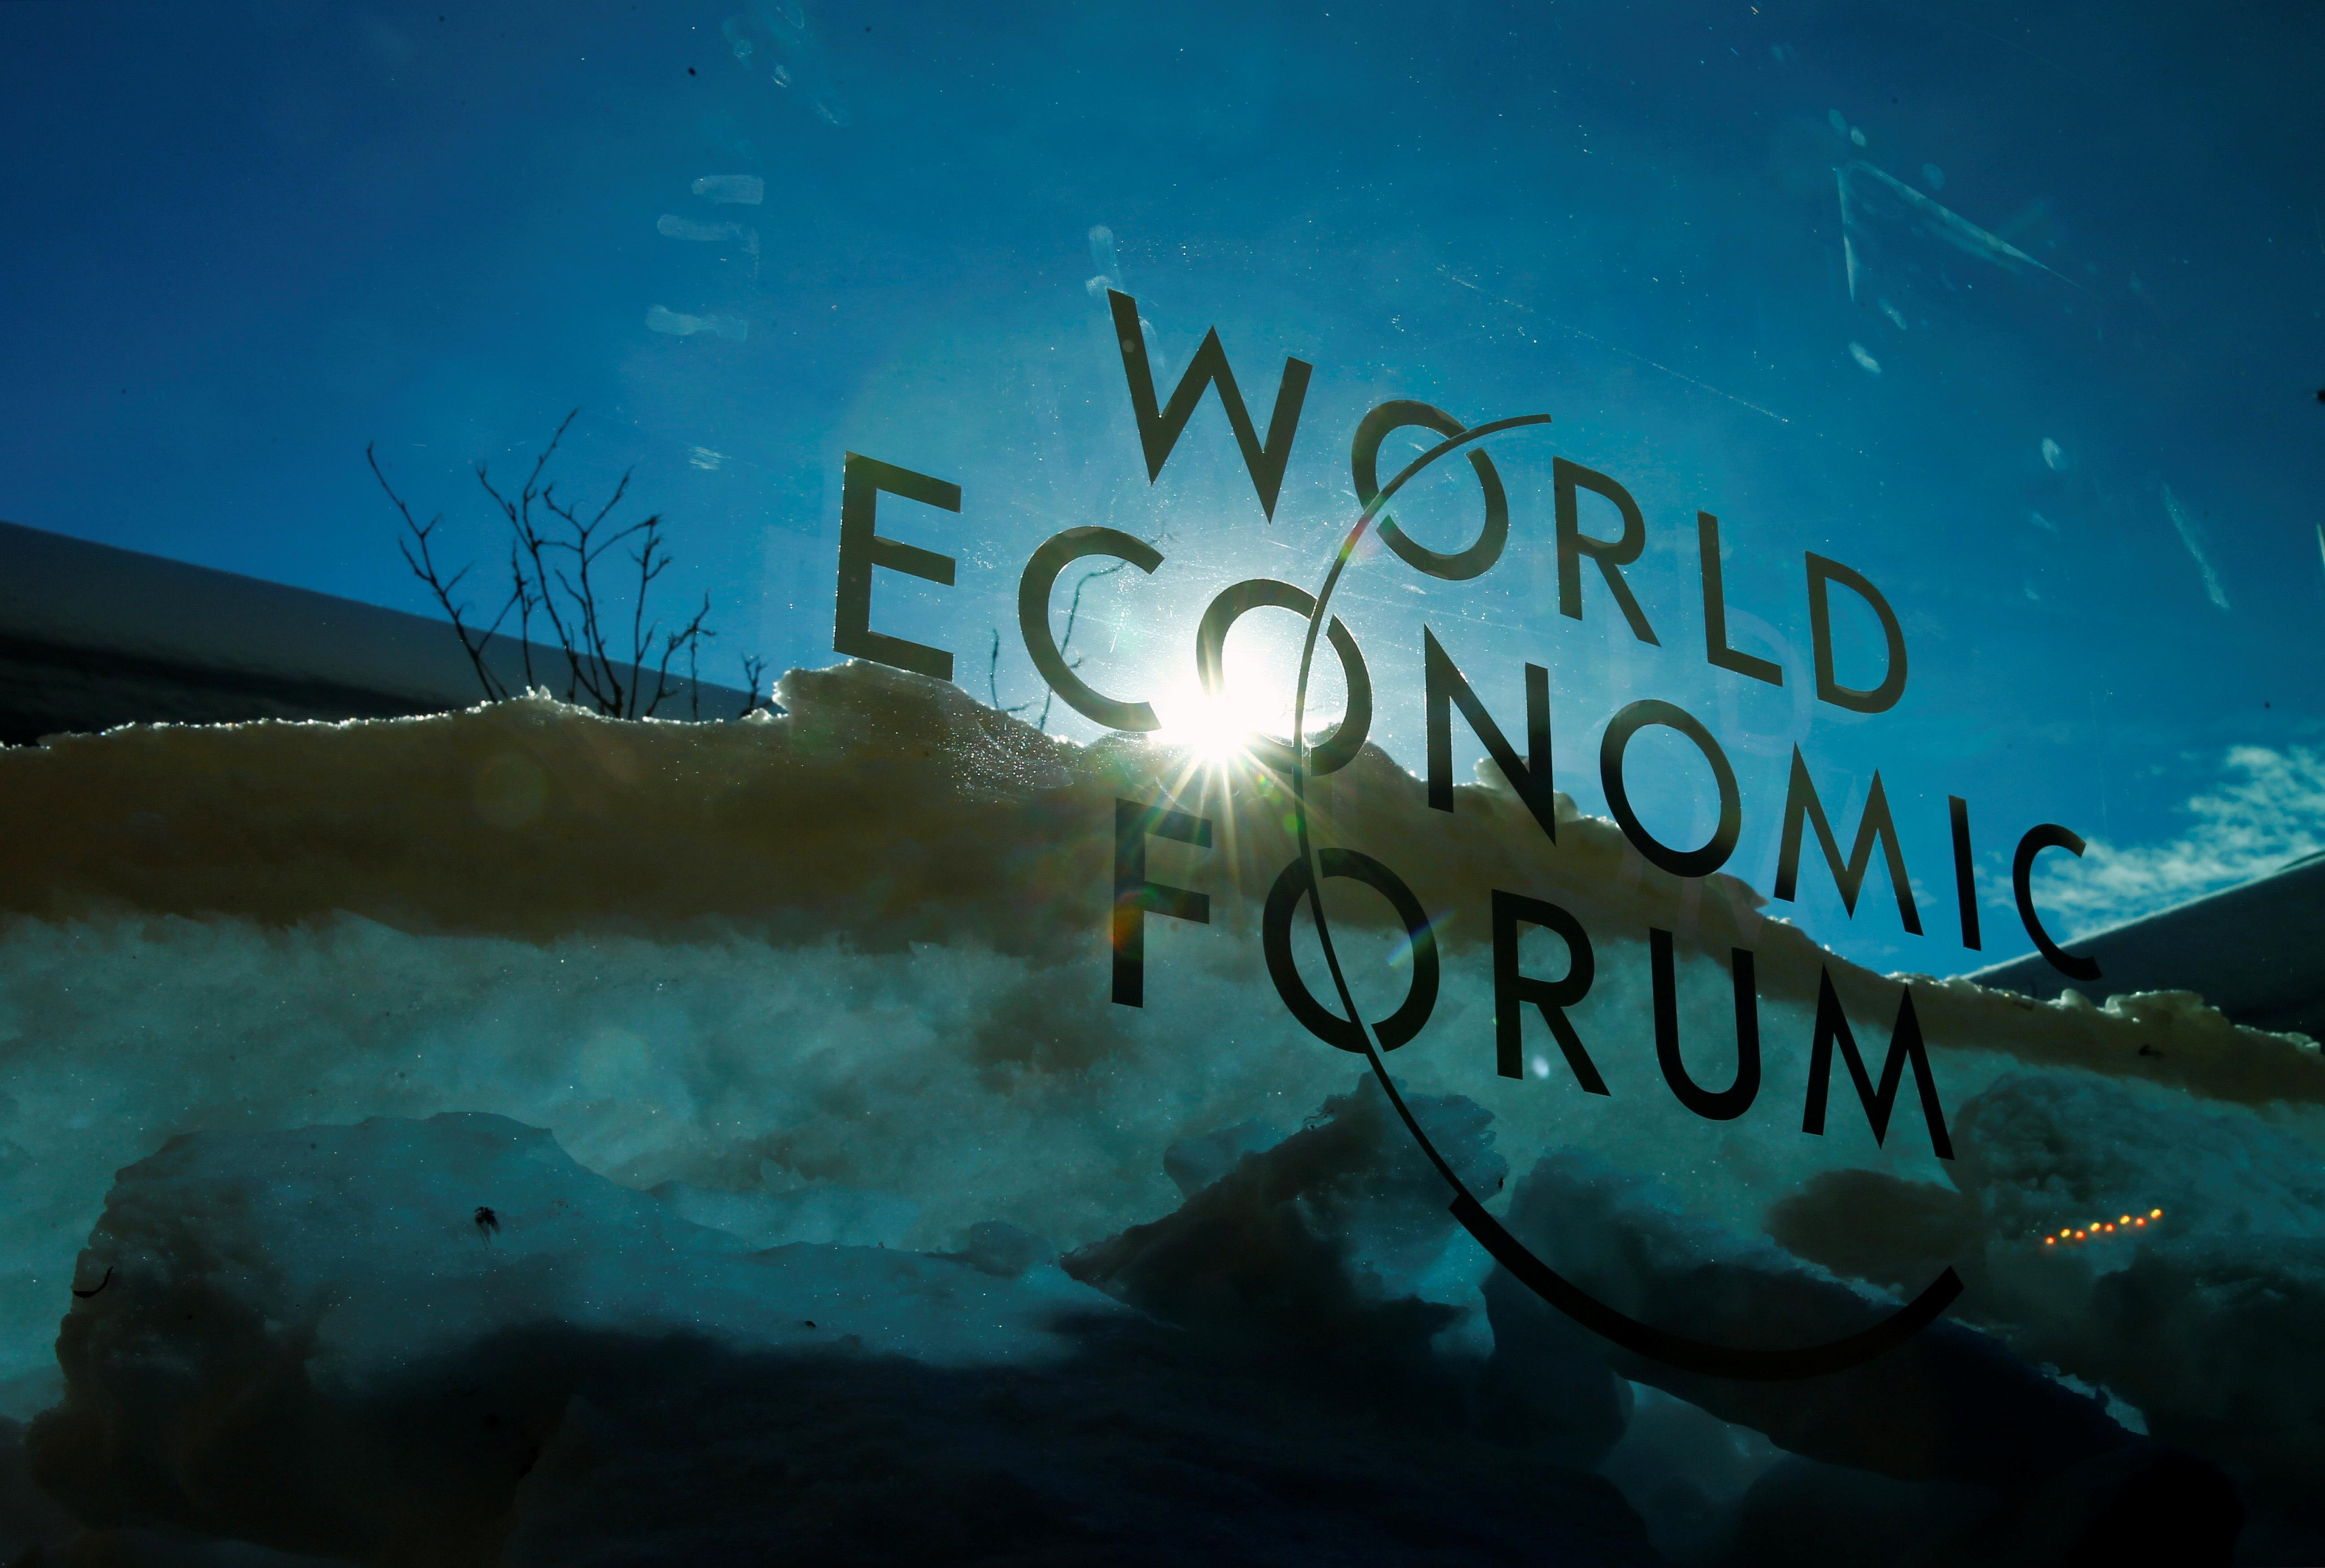 Fiscal crises biggest risk to global business, WEF says